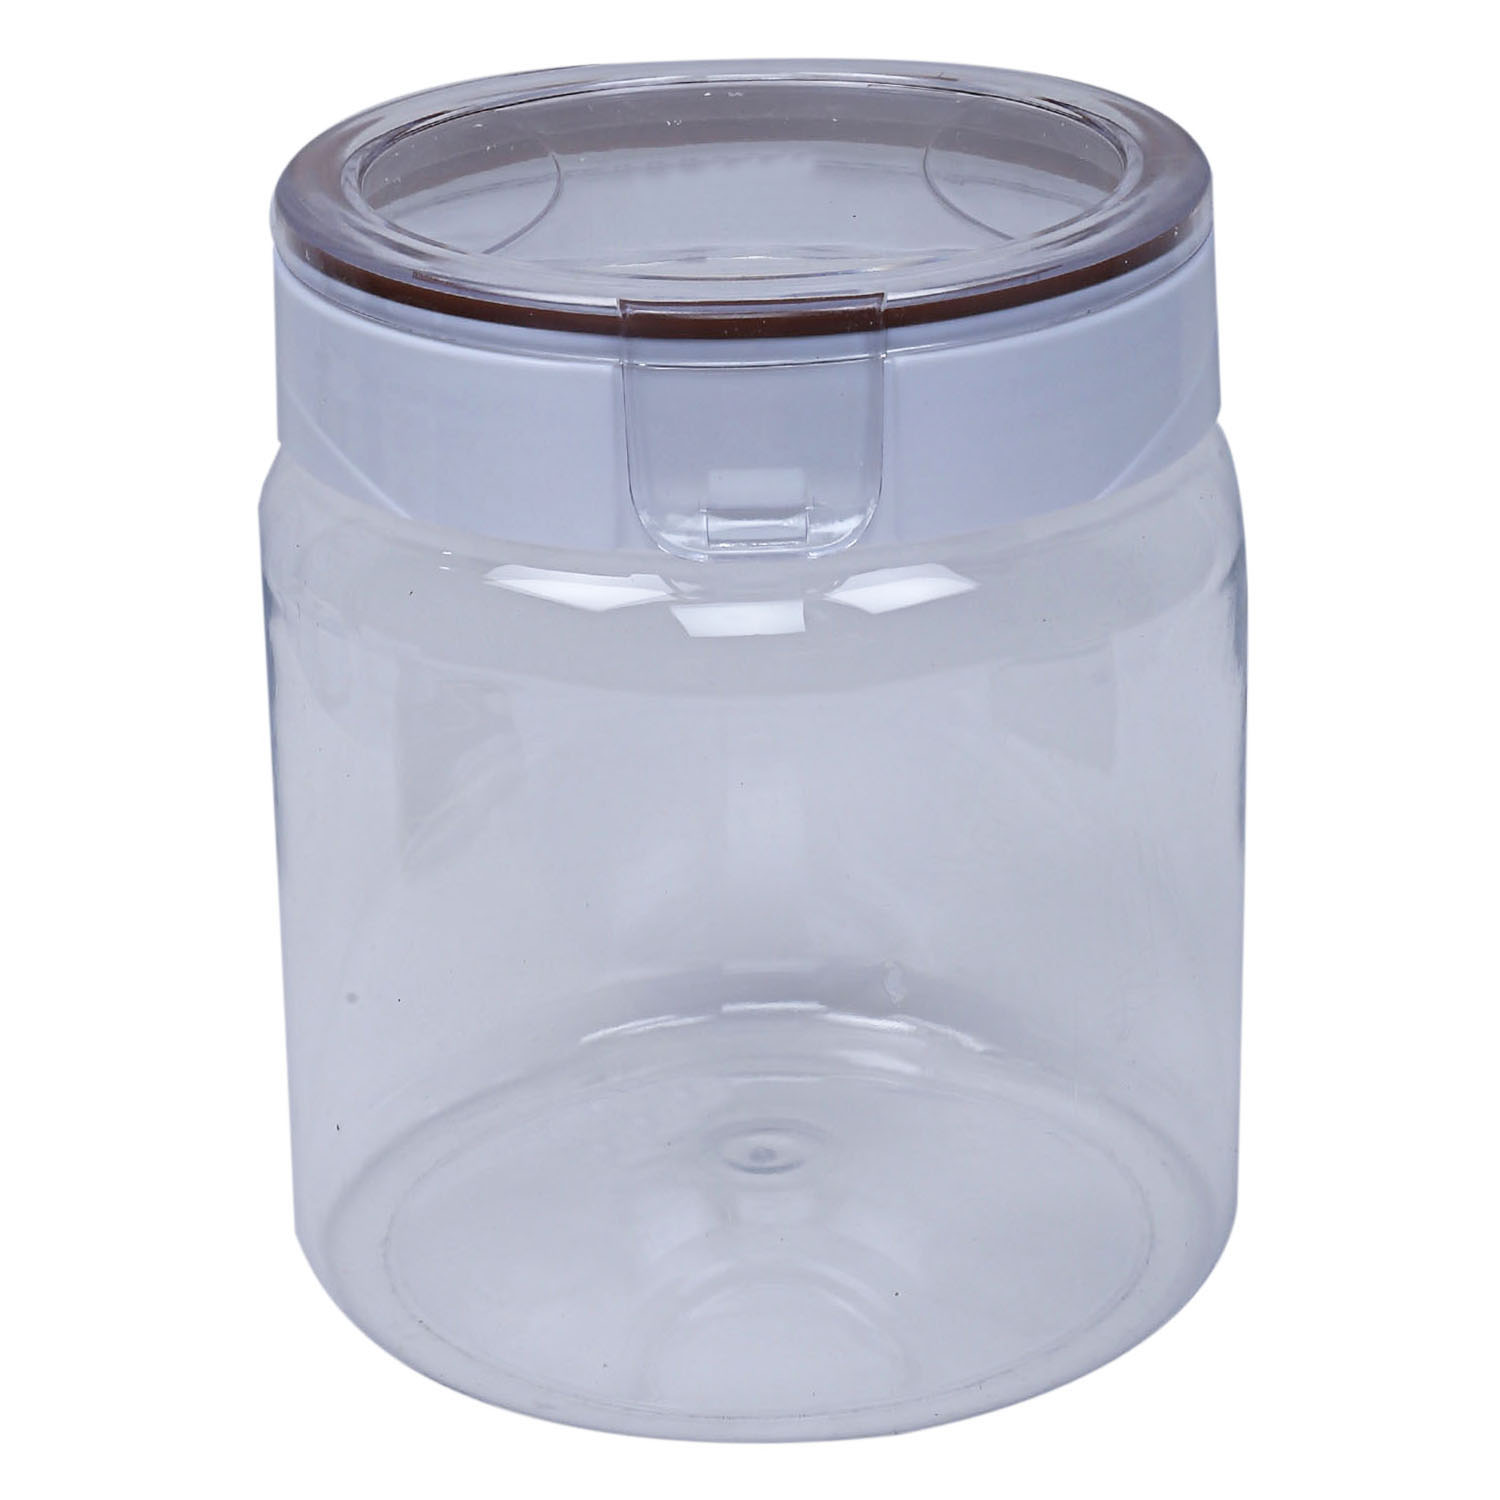 Kuber Industries Plastic Air Tight Lid 2 Pieces Multipurpose Storage Container Set 1700 ml (Transperant) - CTKTC23432